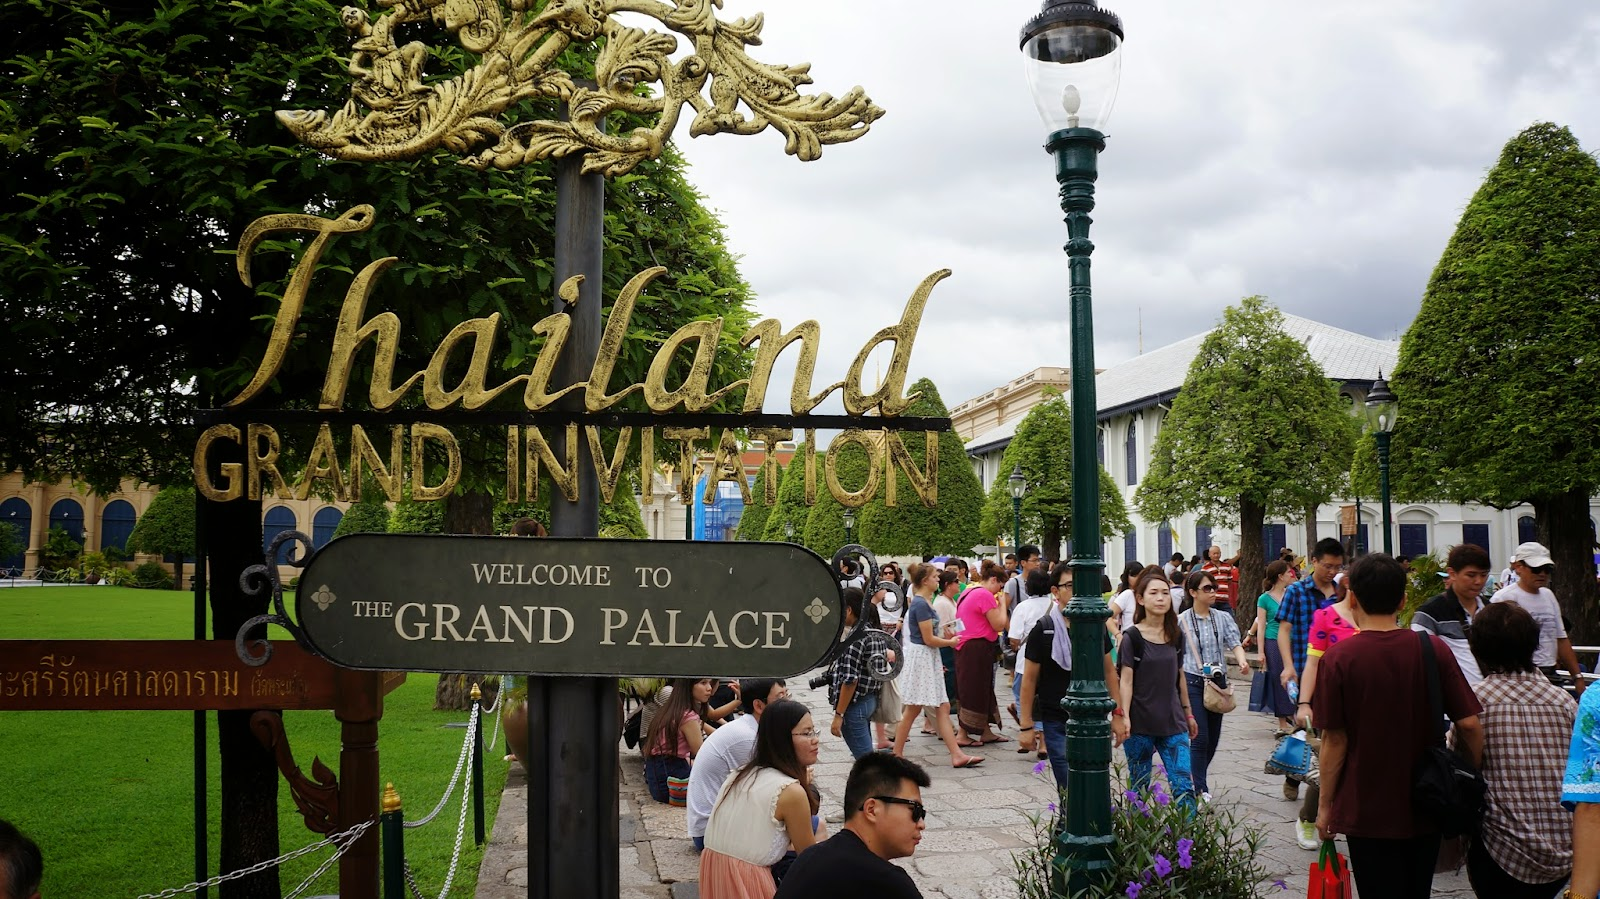 The entrance to the Grand Palace. Proper attire is required for entry